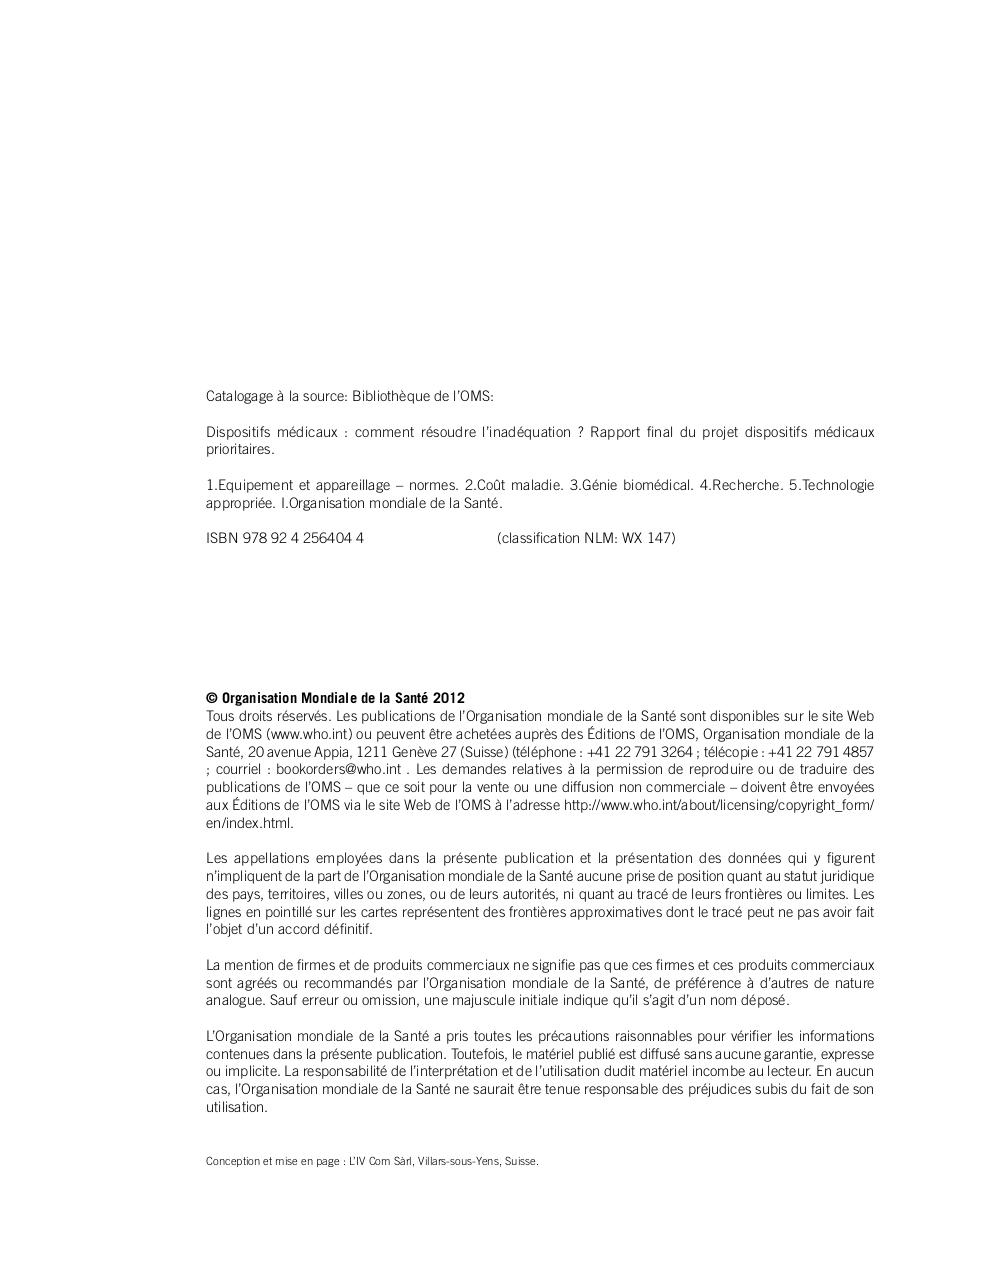 Dispositifs medicaux comment resoudre l'inadequation.pdf - page 4/148